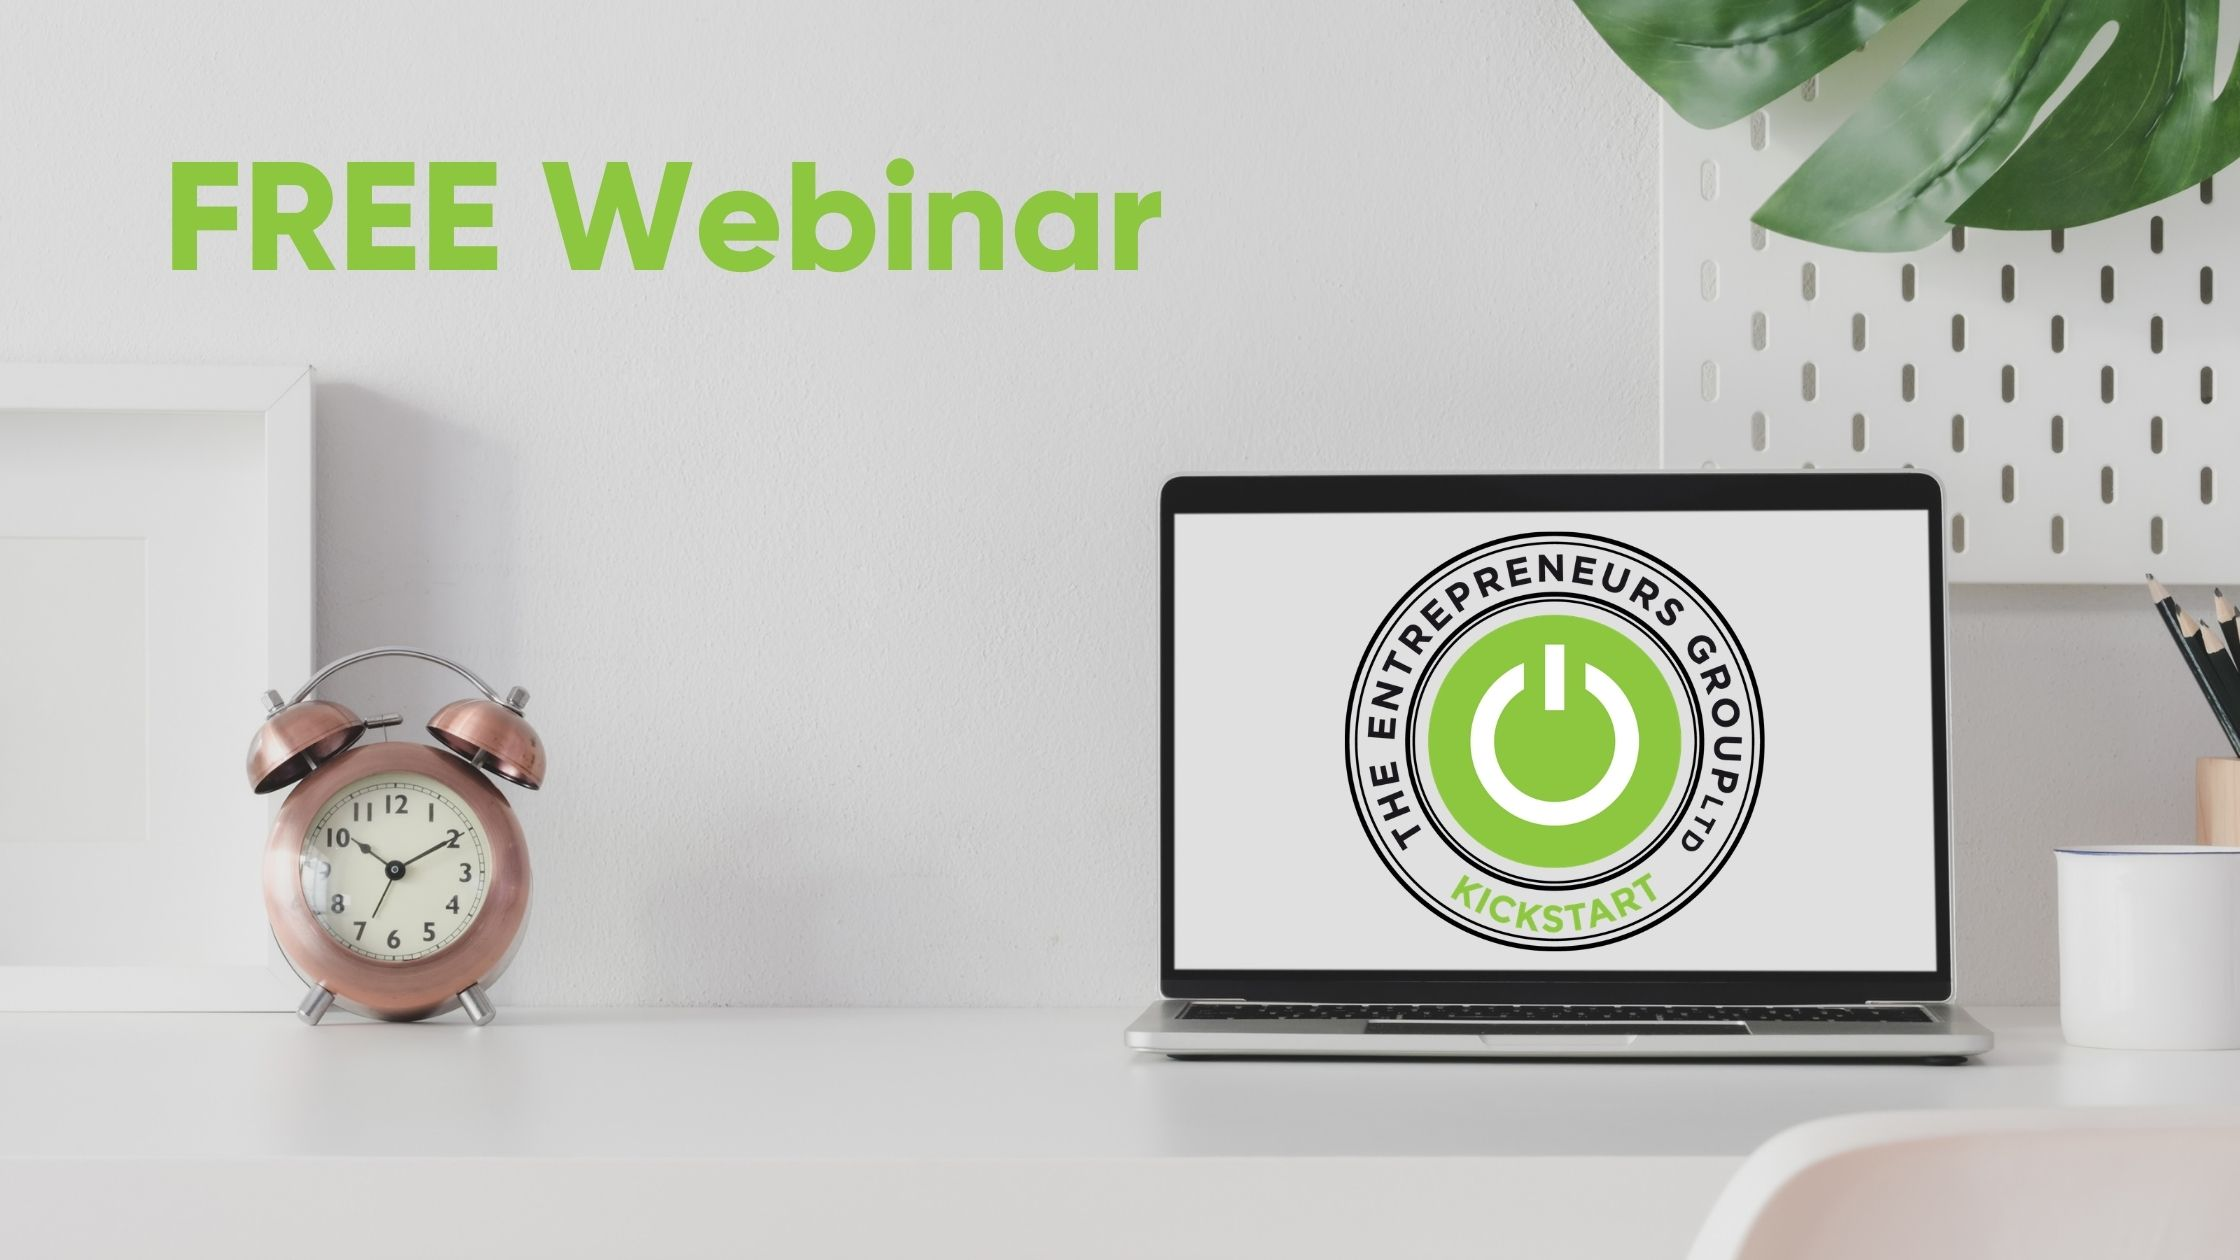 FREE webinar offering support to business start ups